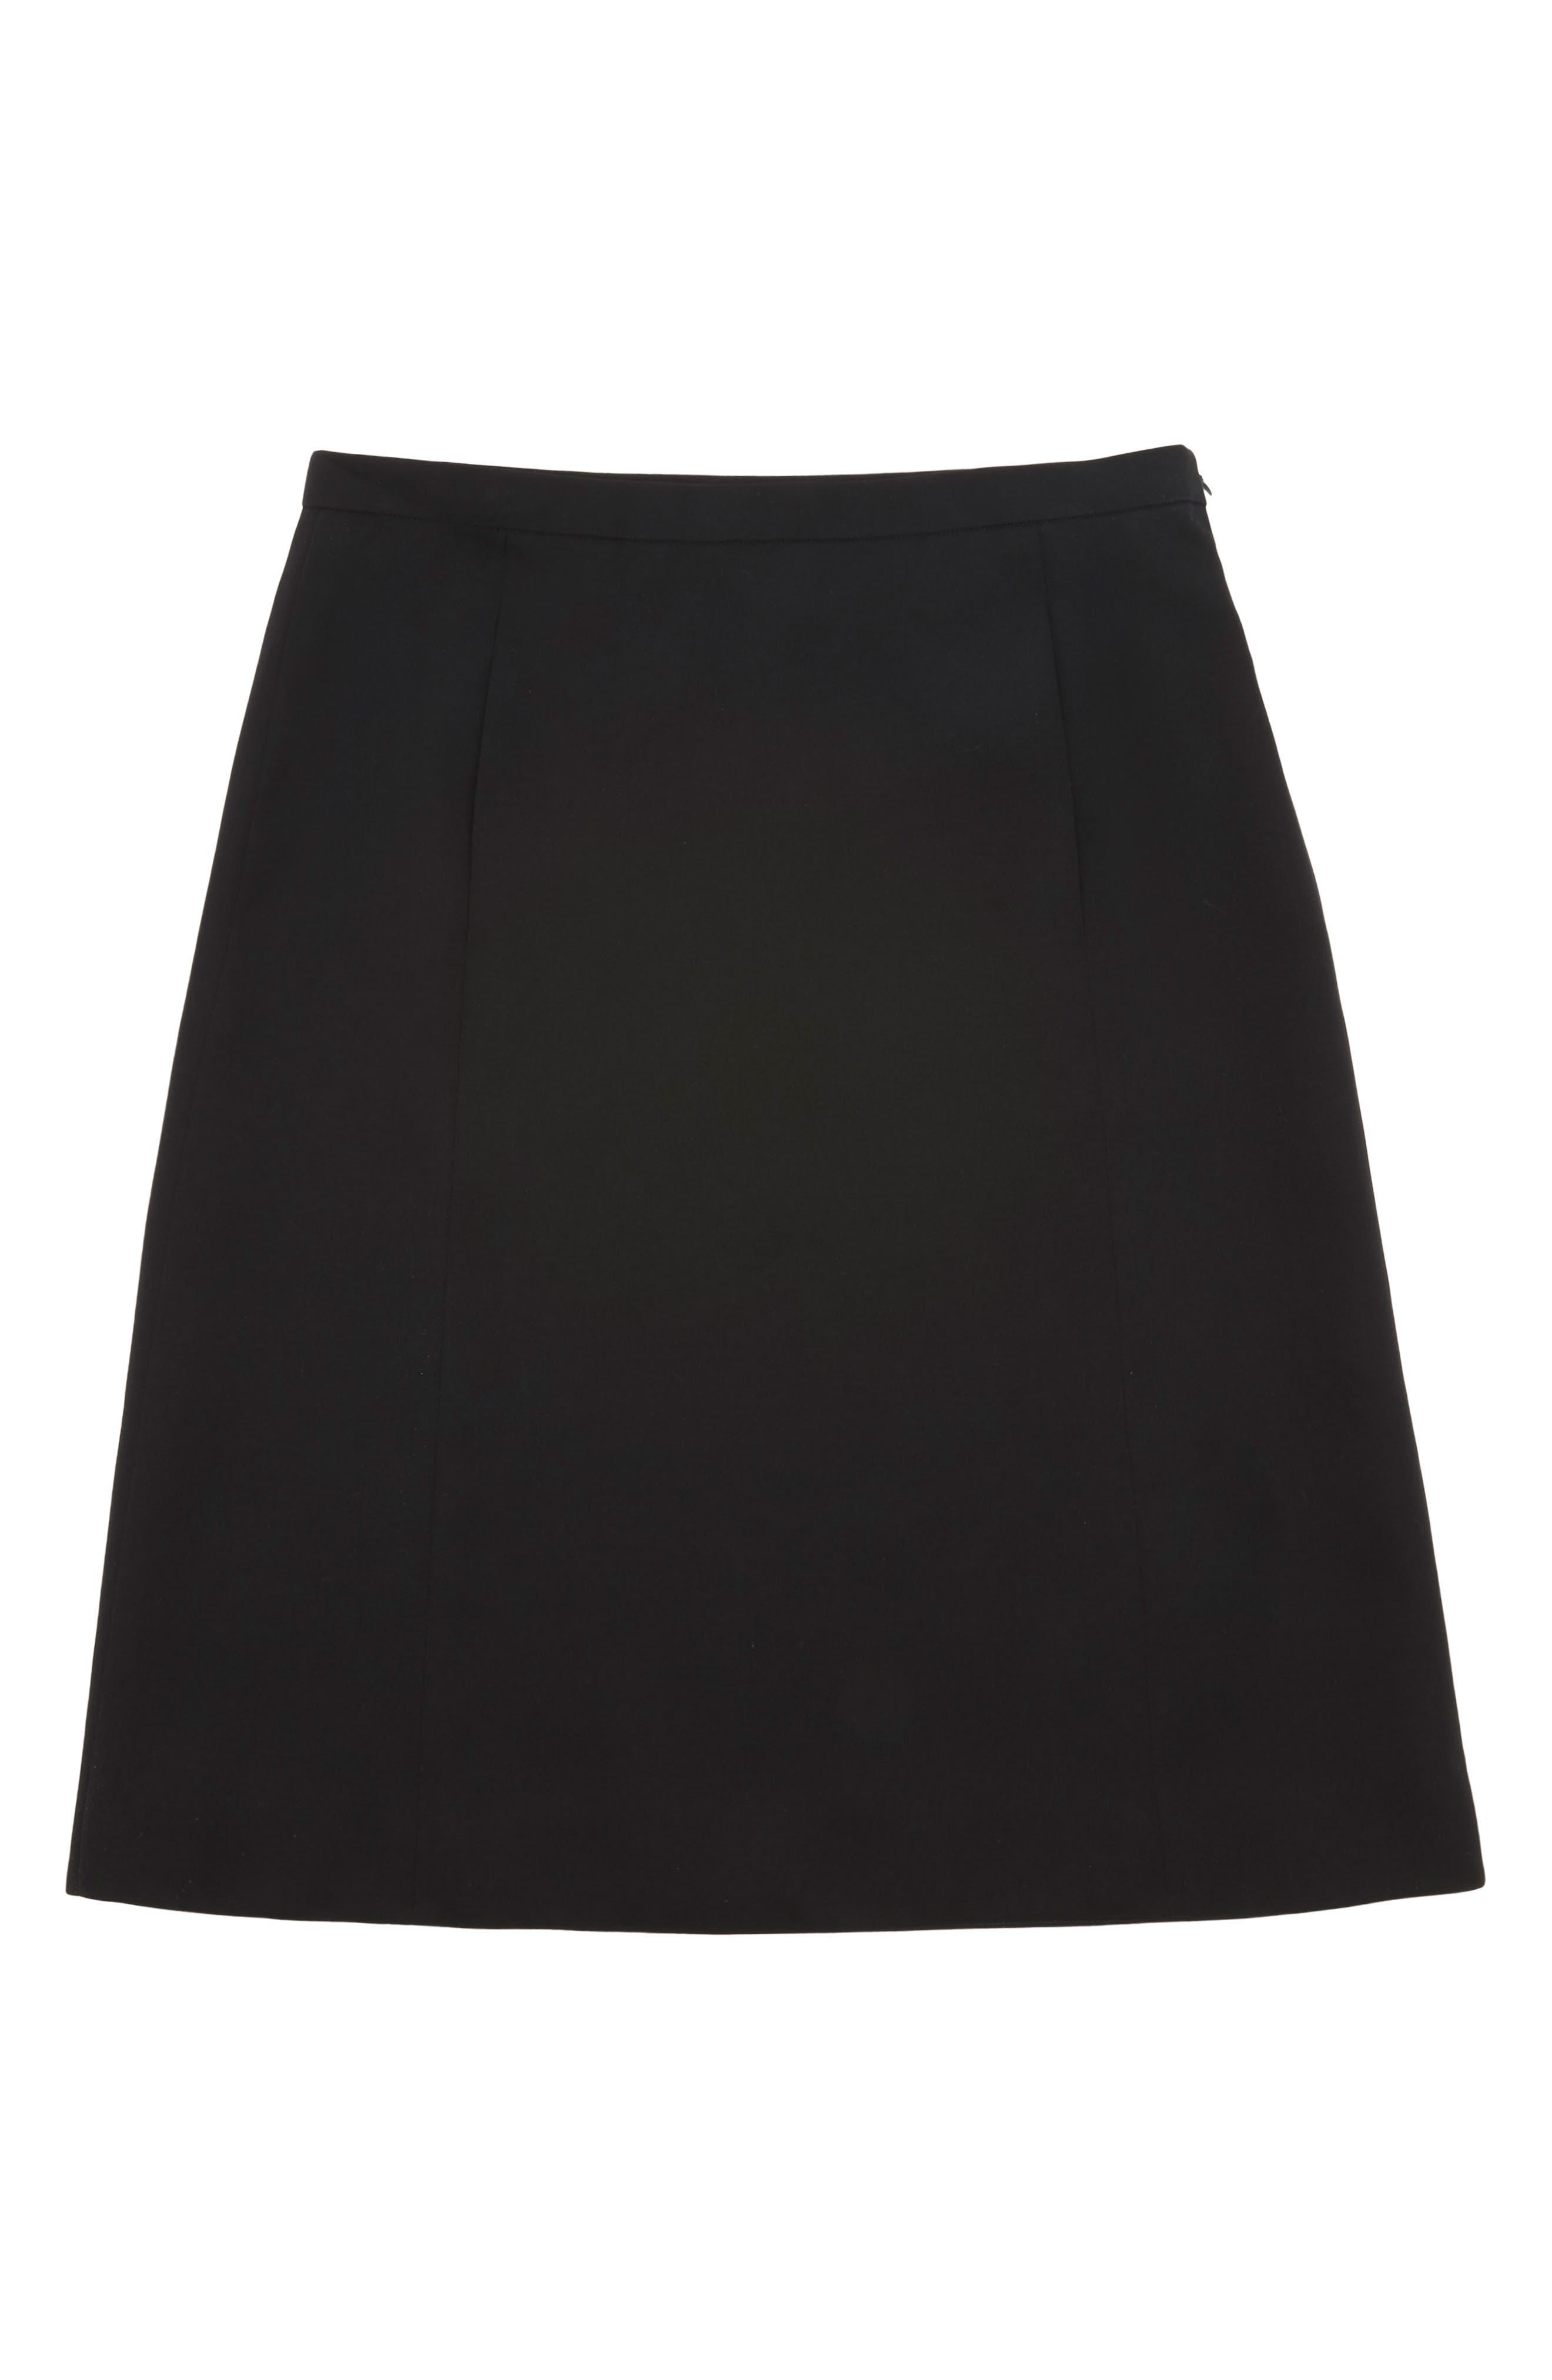 MARC JACOBS,                             Wool A-Line Skirt,                             Alternate thumbnail 4, color,                             BLACK